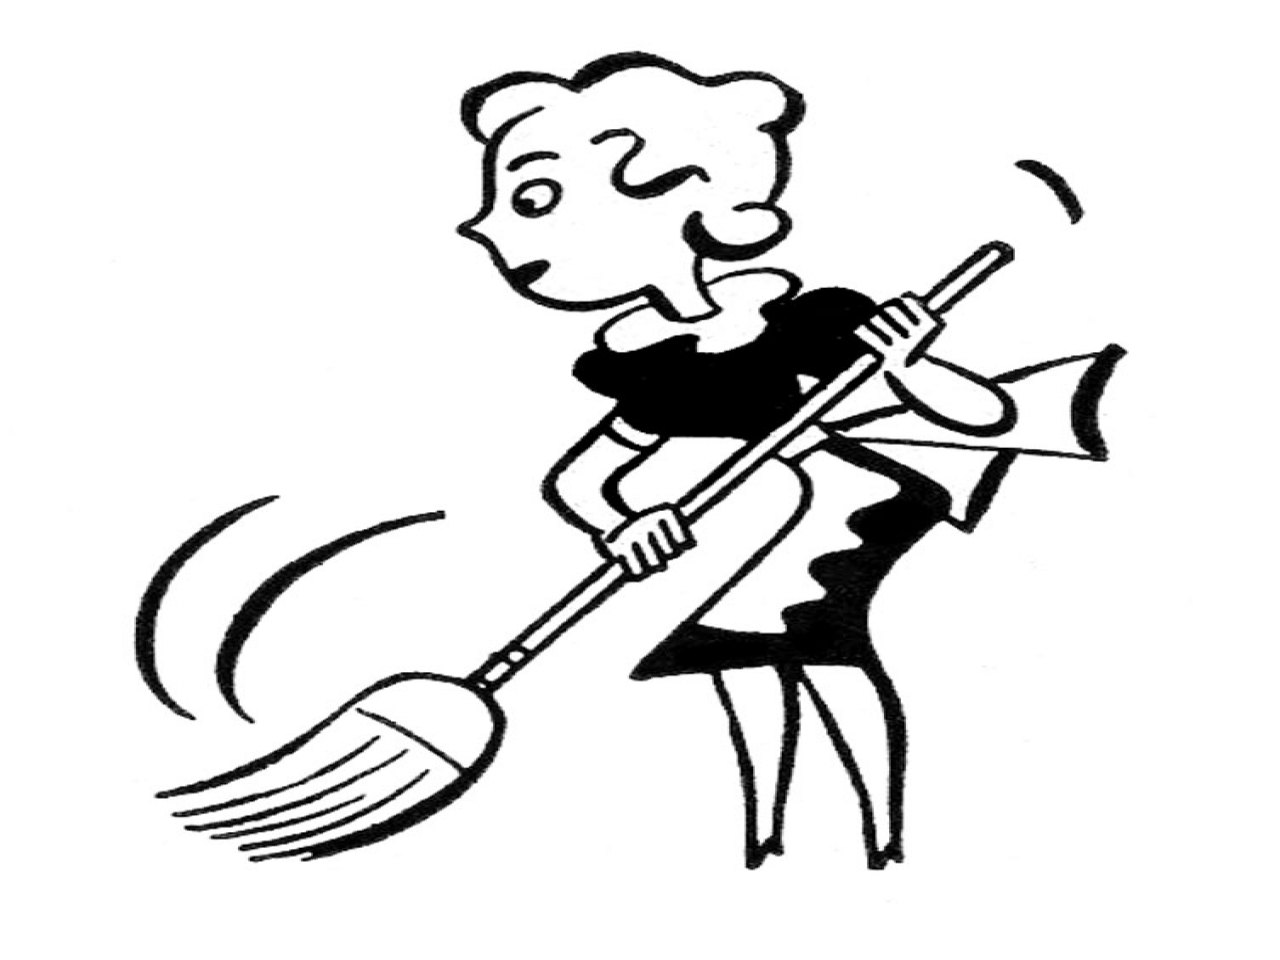 Cleaning Supplies Clip Art Black And White